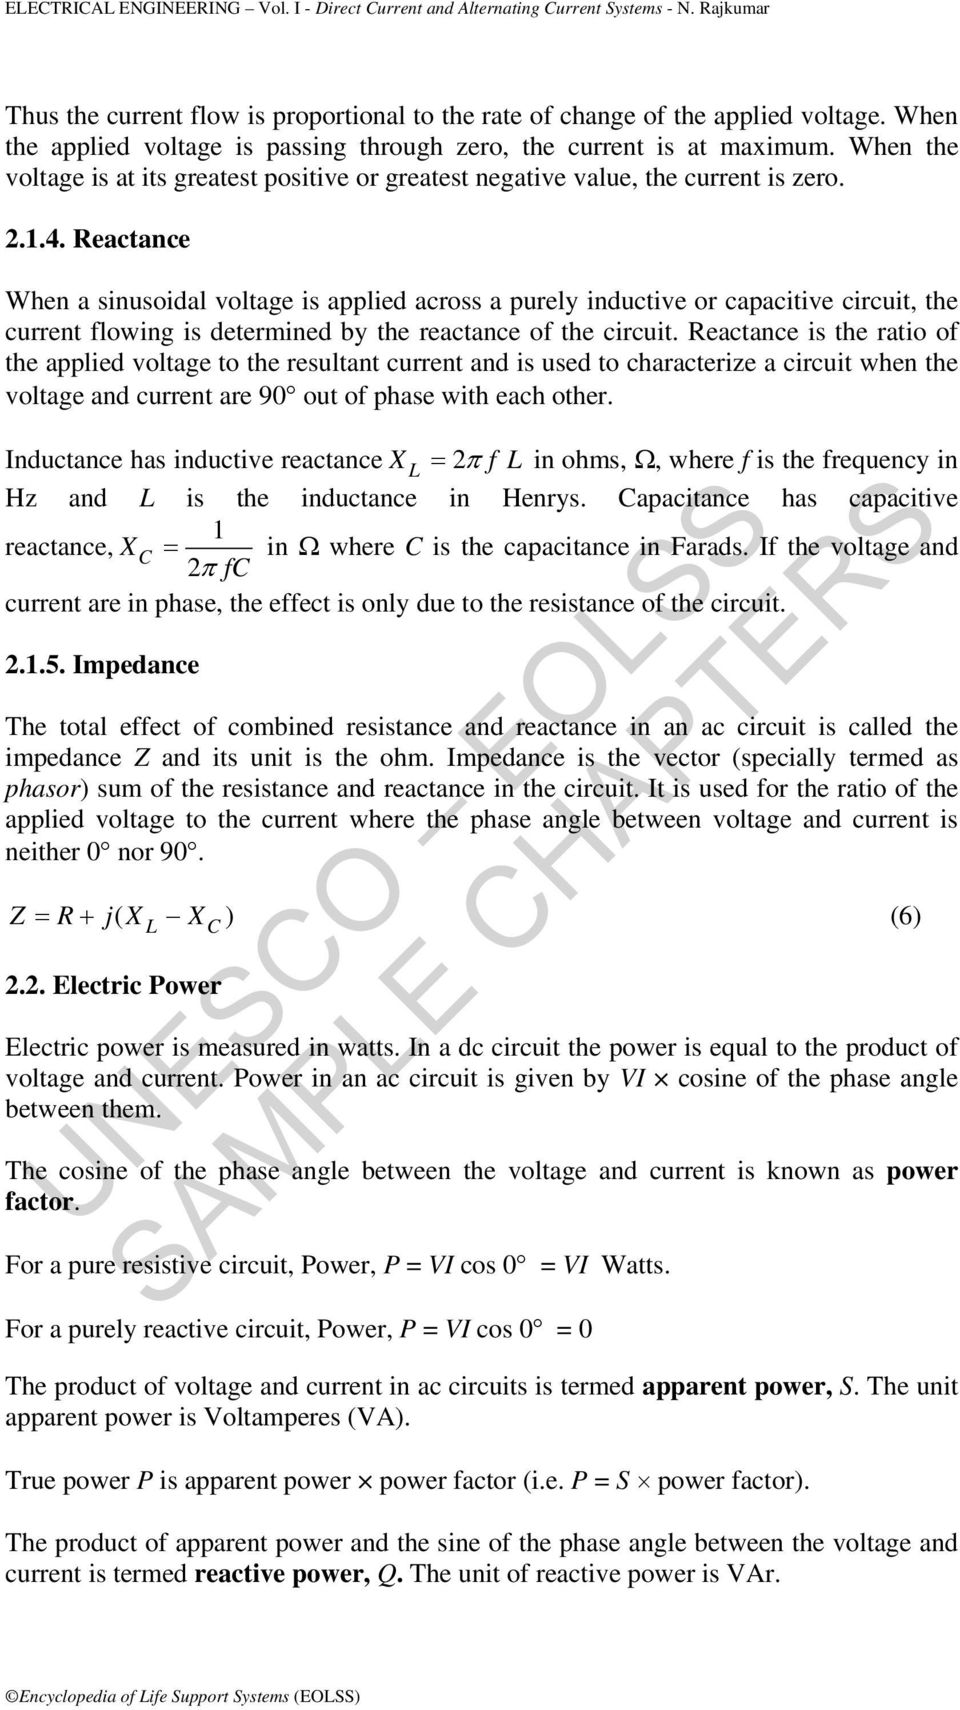 Electrical Engineering Vol I Direct Current And Alternating The Capacitive Reactance Circuit Impedance Is Calculated As When A Sinusoidal Voltage Applied Across Purely Inductive Or